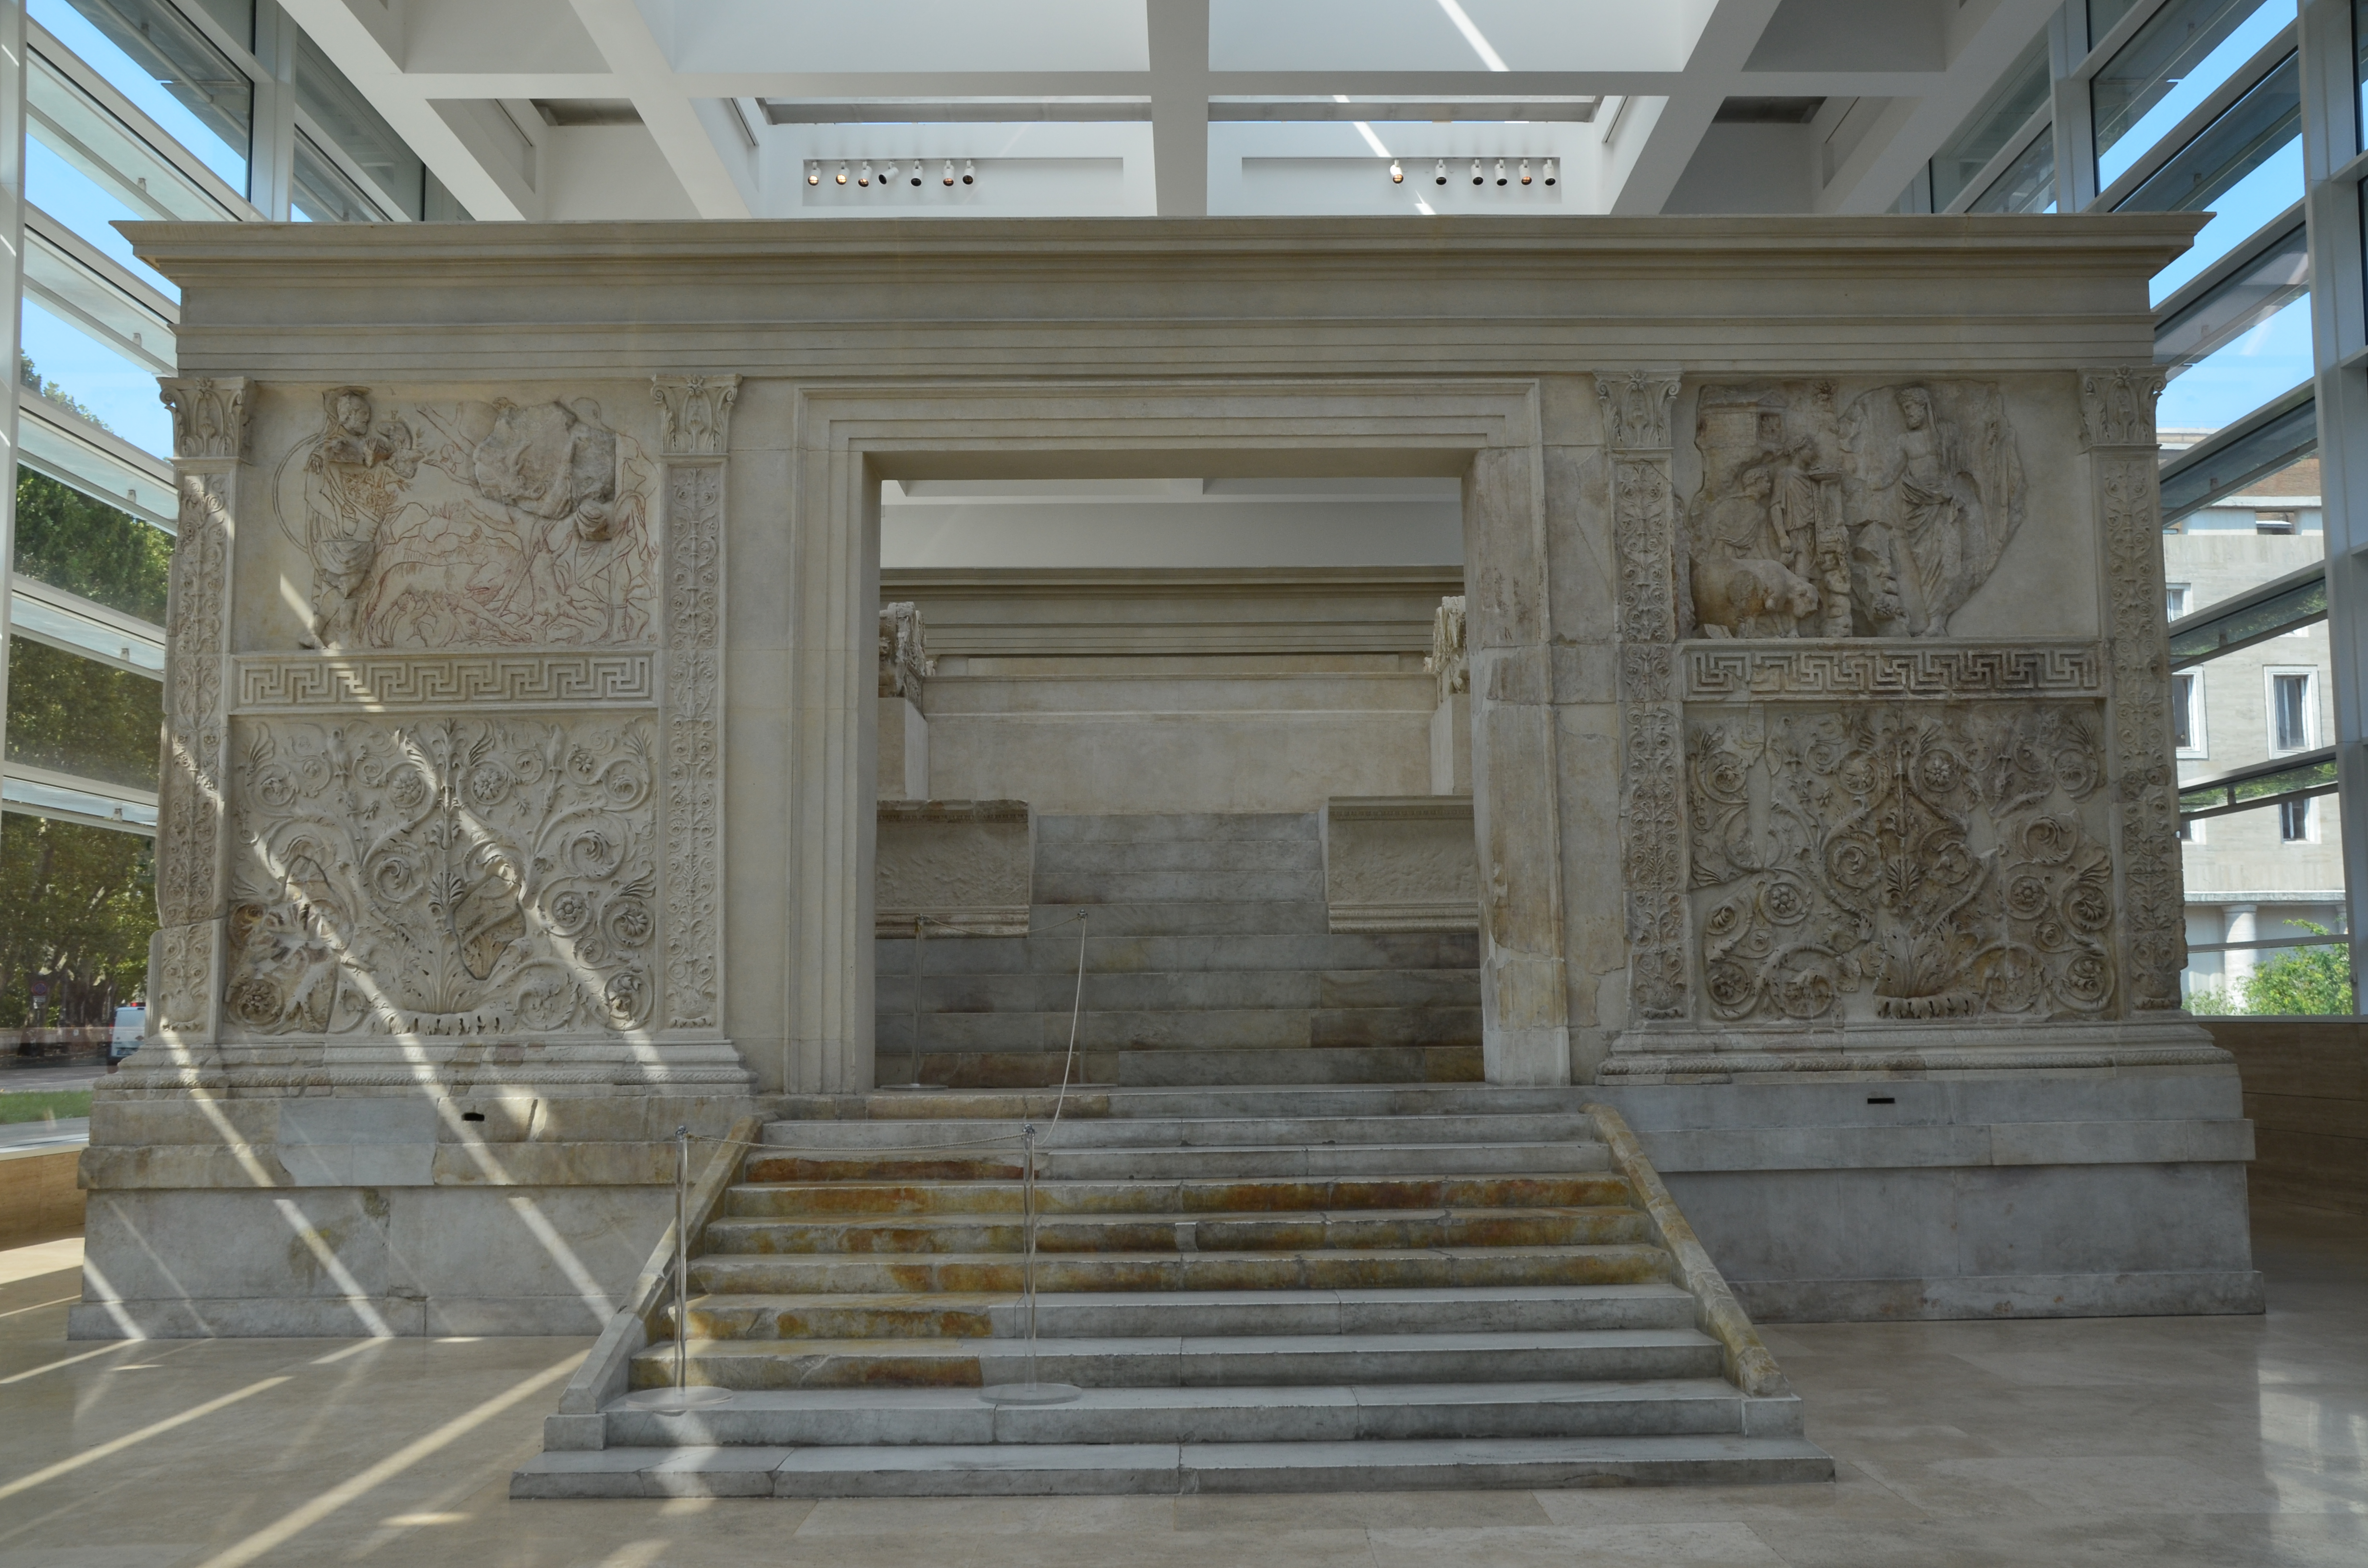 ara pacis augustae Find the perfect augustae stock photo huge collection, amazing choice, 100+ million high quality, affordable rf and rm images no need to register, buy now.